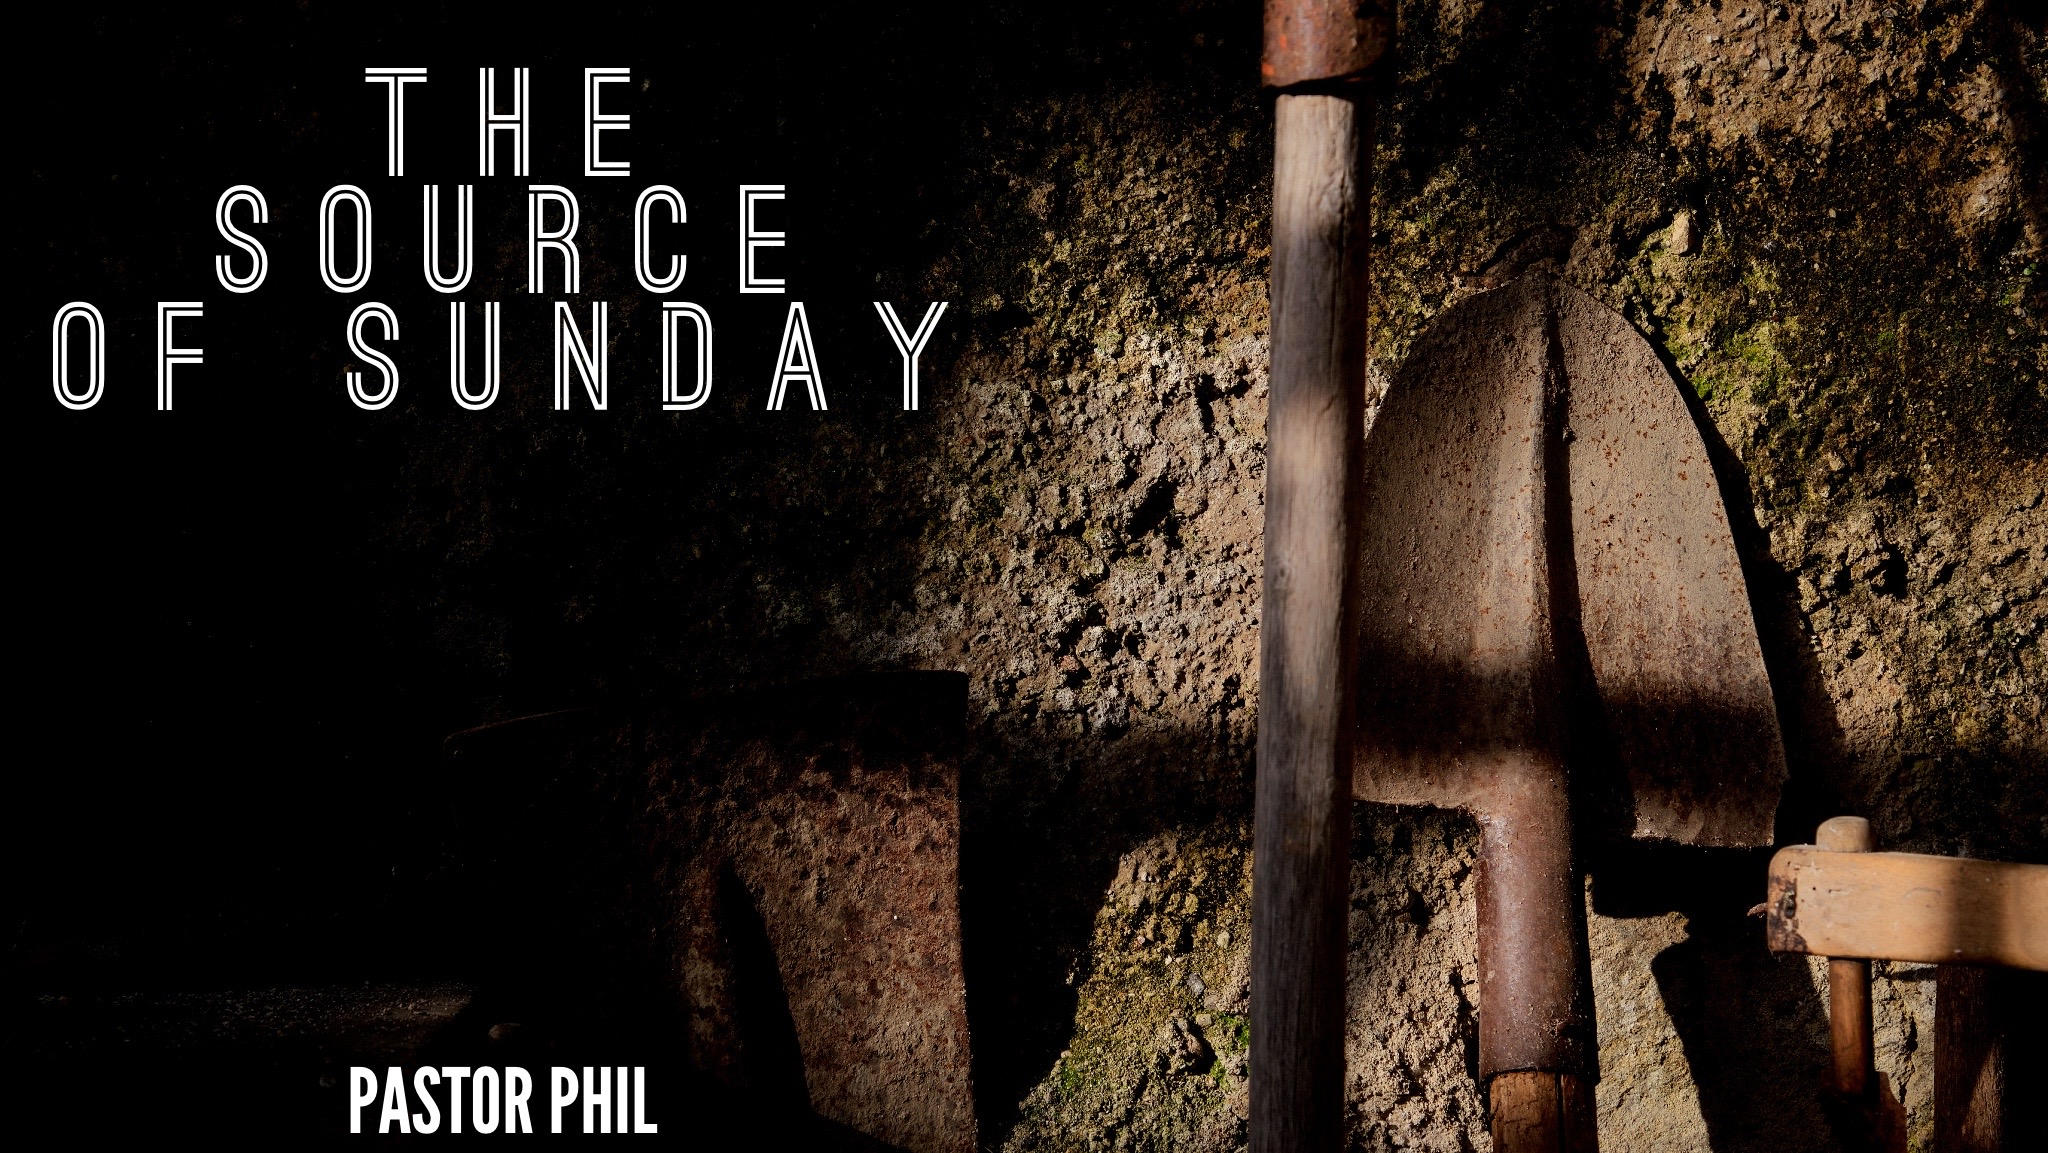 The Source of Sunday